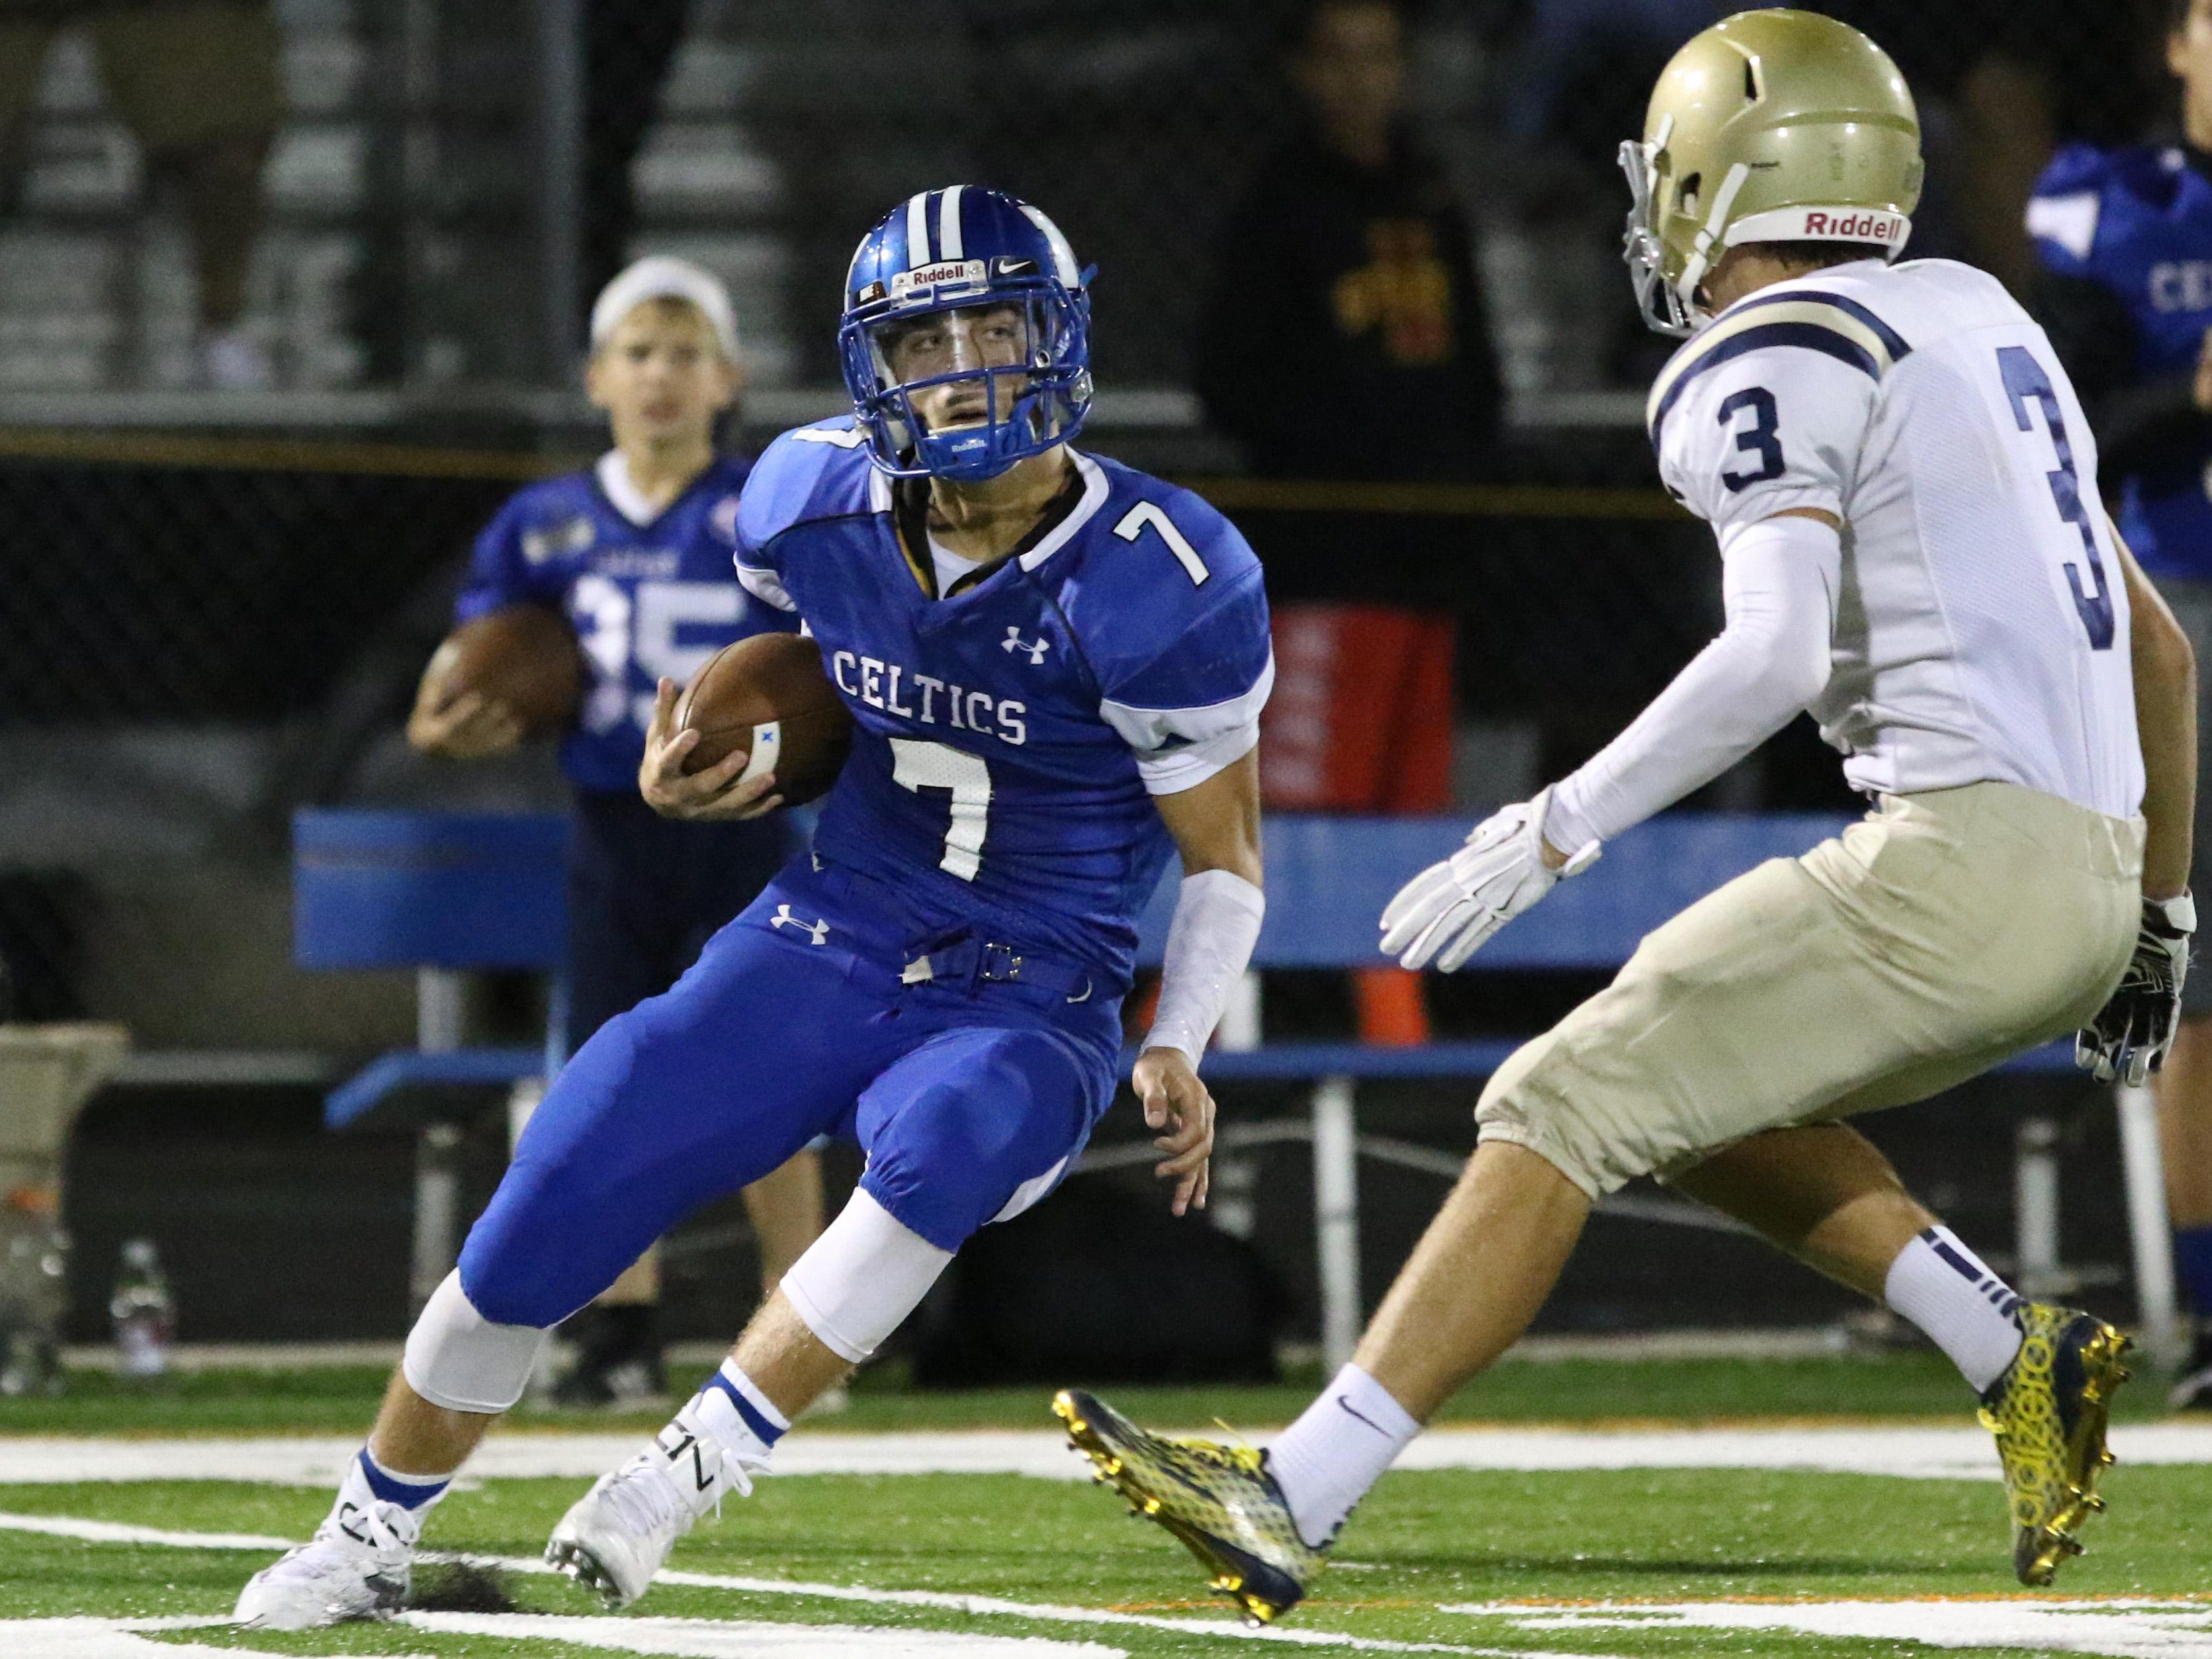 McNary's Trent Van Cleave runs the ball as the Celtics defeat West Albany 31-22 in a Greater Valley Conference game on Friday, Sept. 18, 2015.